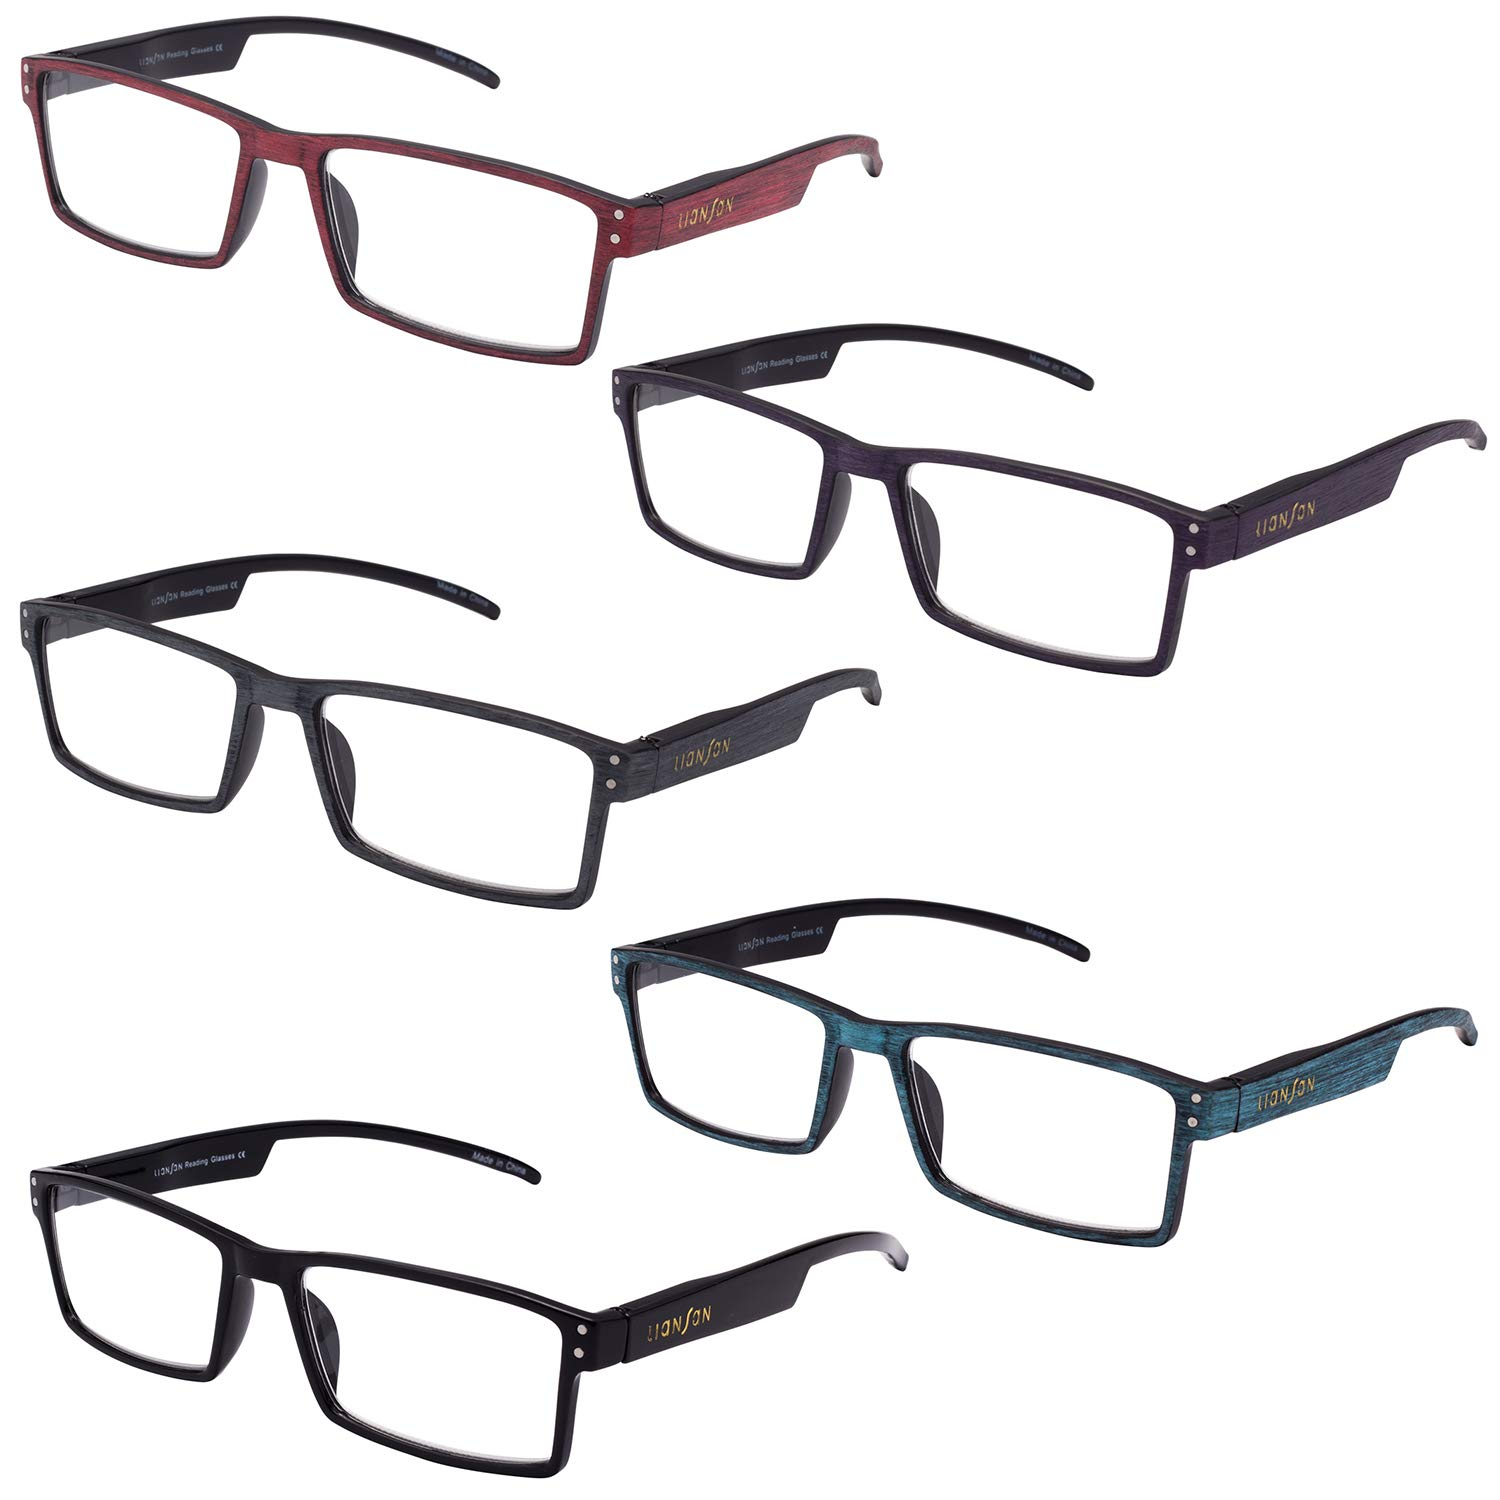 065295fb80e Amazon.com  LianSan Designer Rectangular Plastic Faux Wood Reading Glasses  4 Pack Women Men Oversized Fashion Magnifying Eyeglasses Eye Strain Readers  2.0 ...